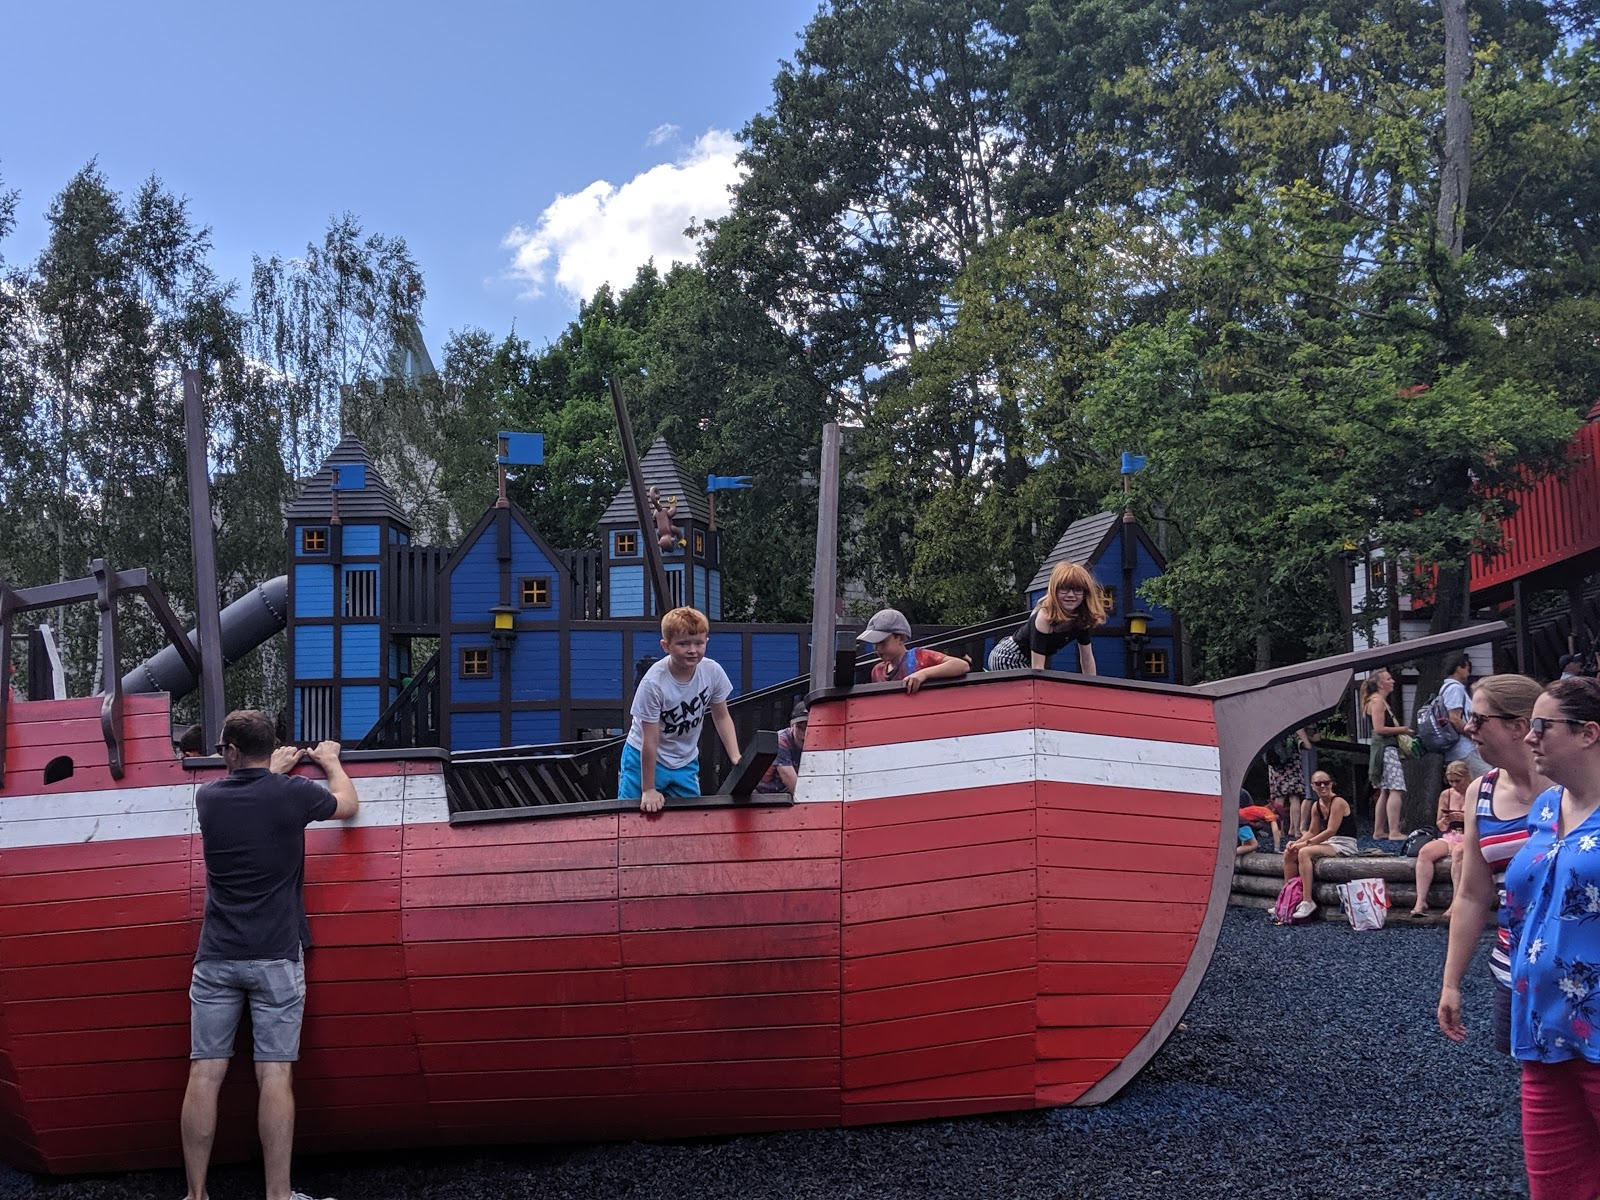 Exploring the Southern Merlin Theme Parks with Tweens  - LEGOLAND play park